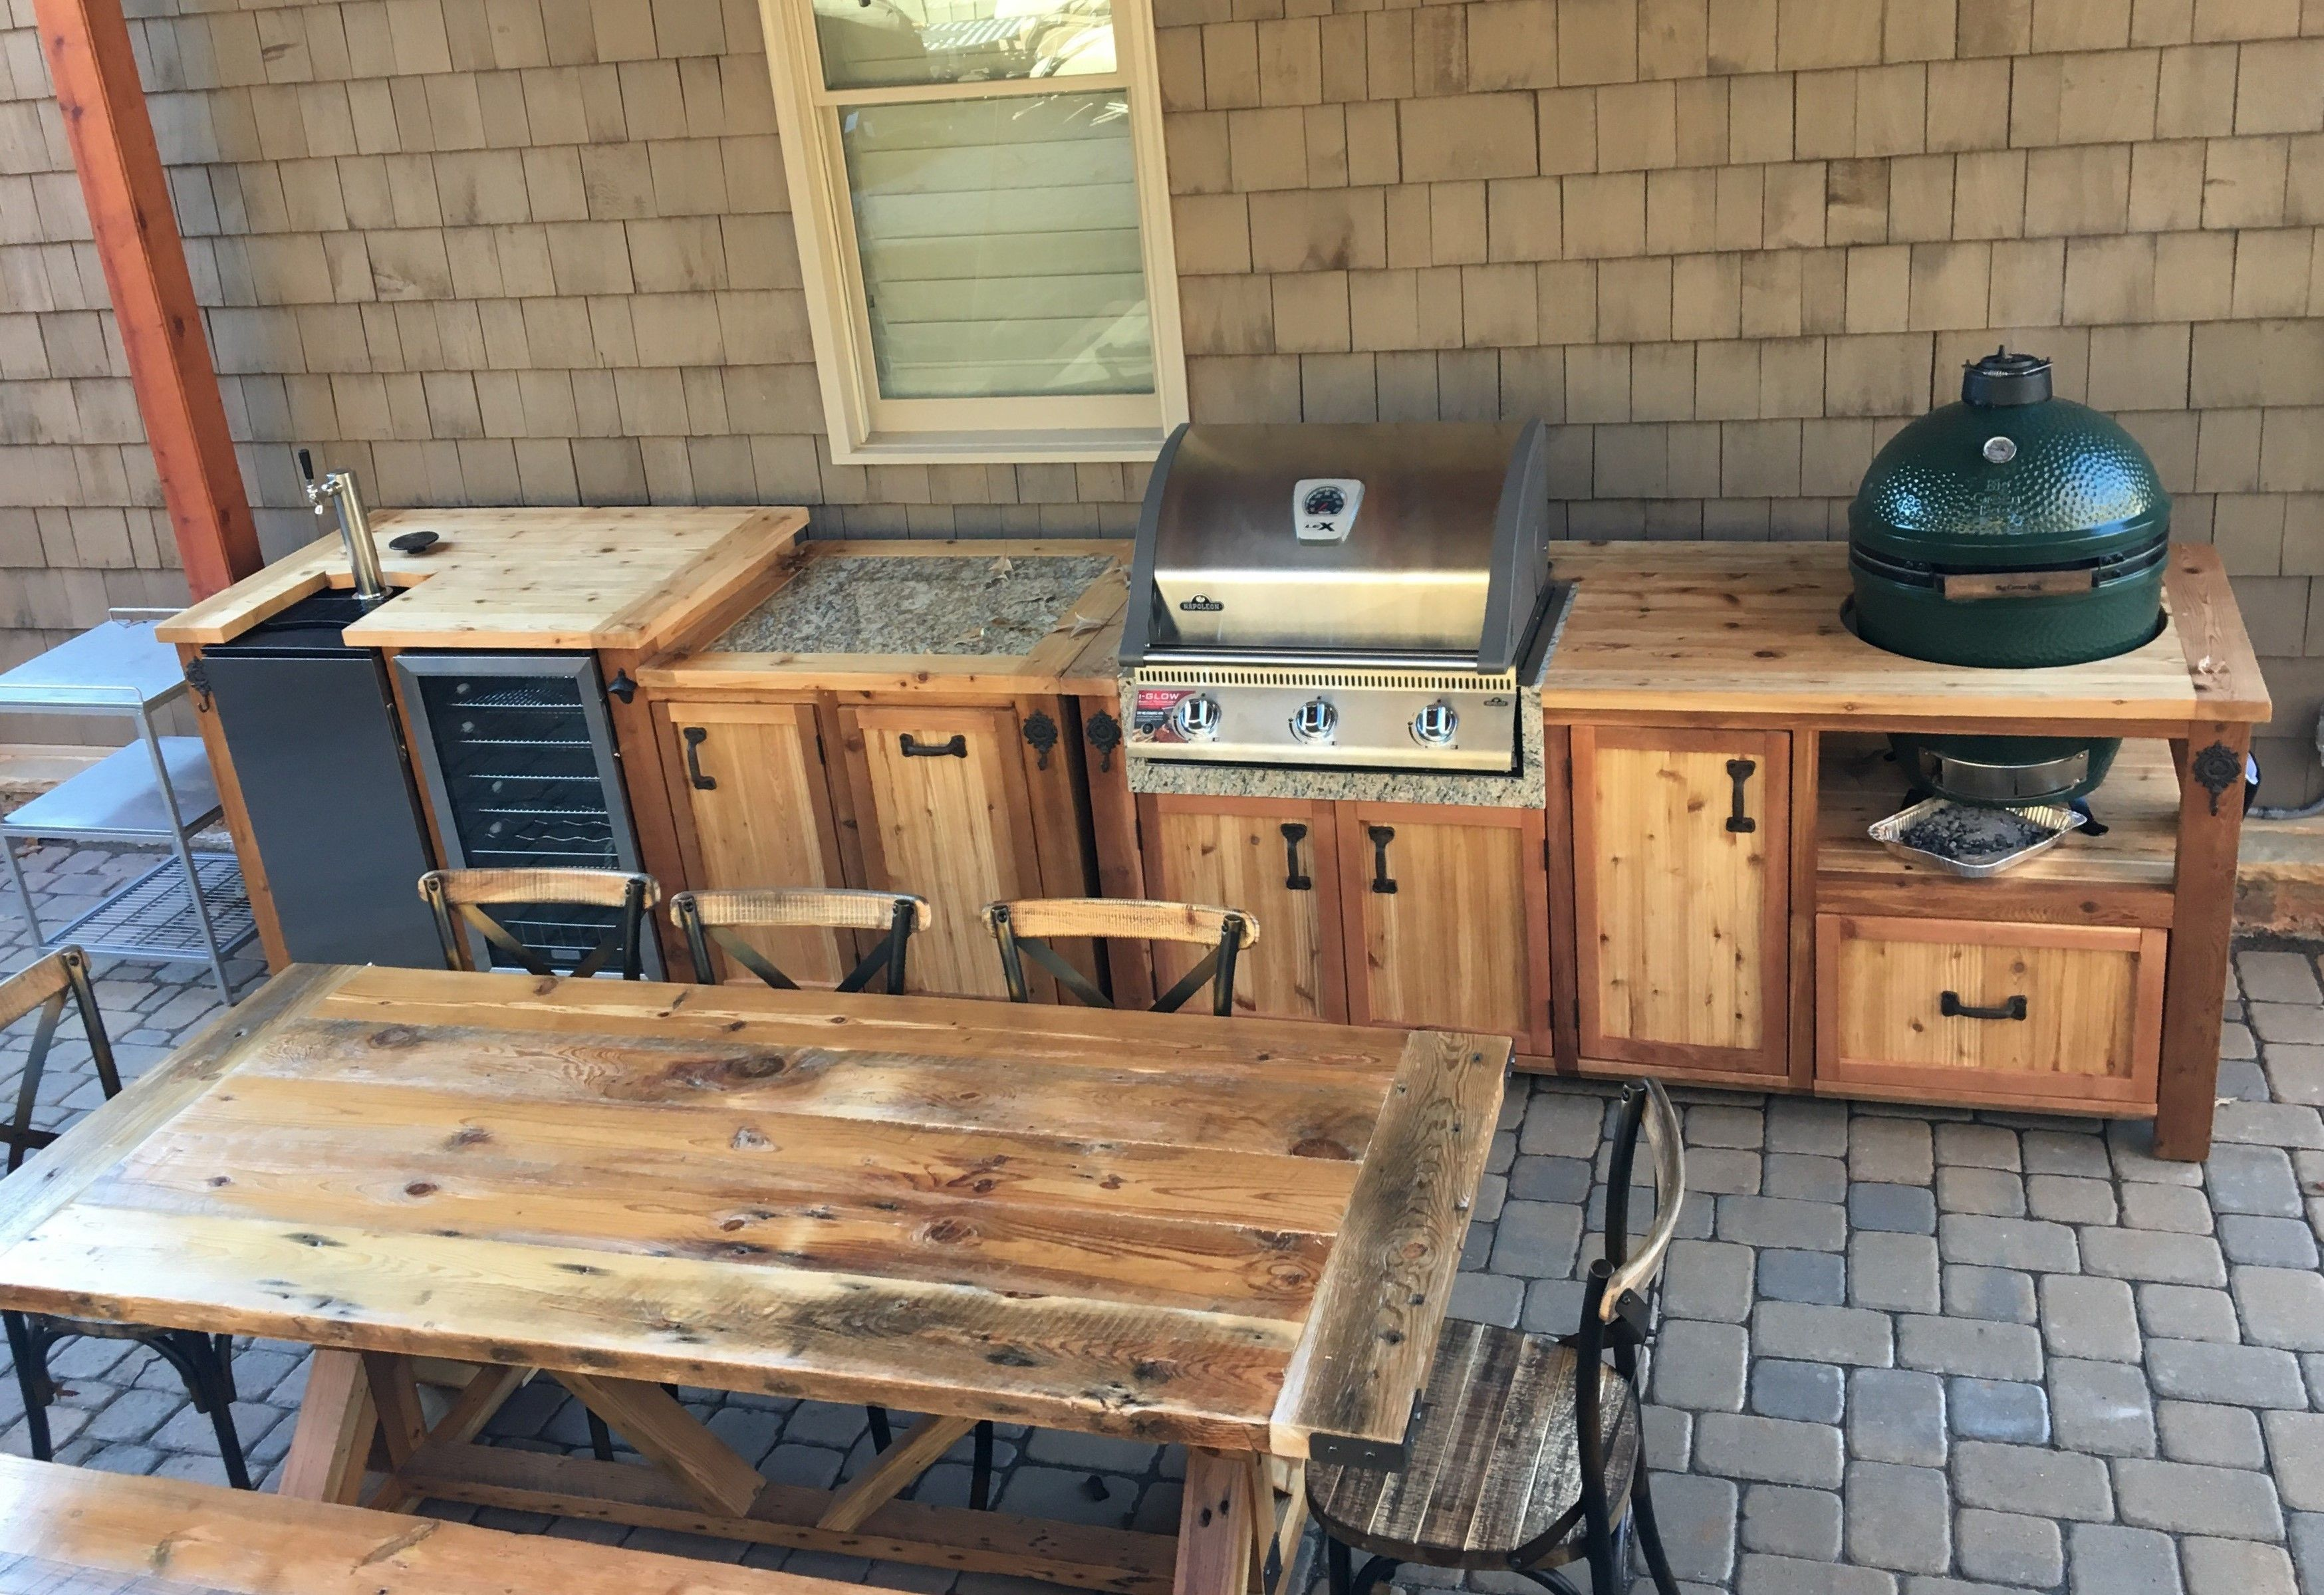 Custom Dual Grill Beverage Island With Napoleon Gas Grill Big Green Egg Kegerator Mini Fridge We Customize Patio Kitchen Outdoor Kitchen Grill Table